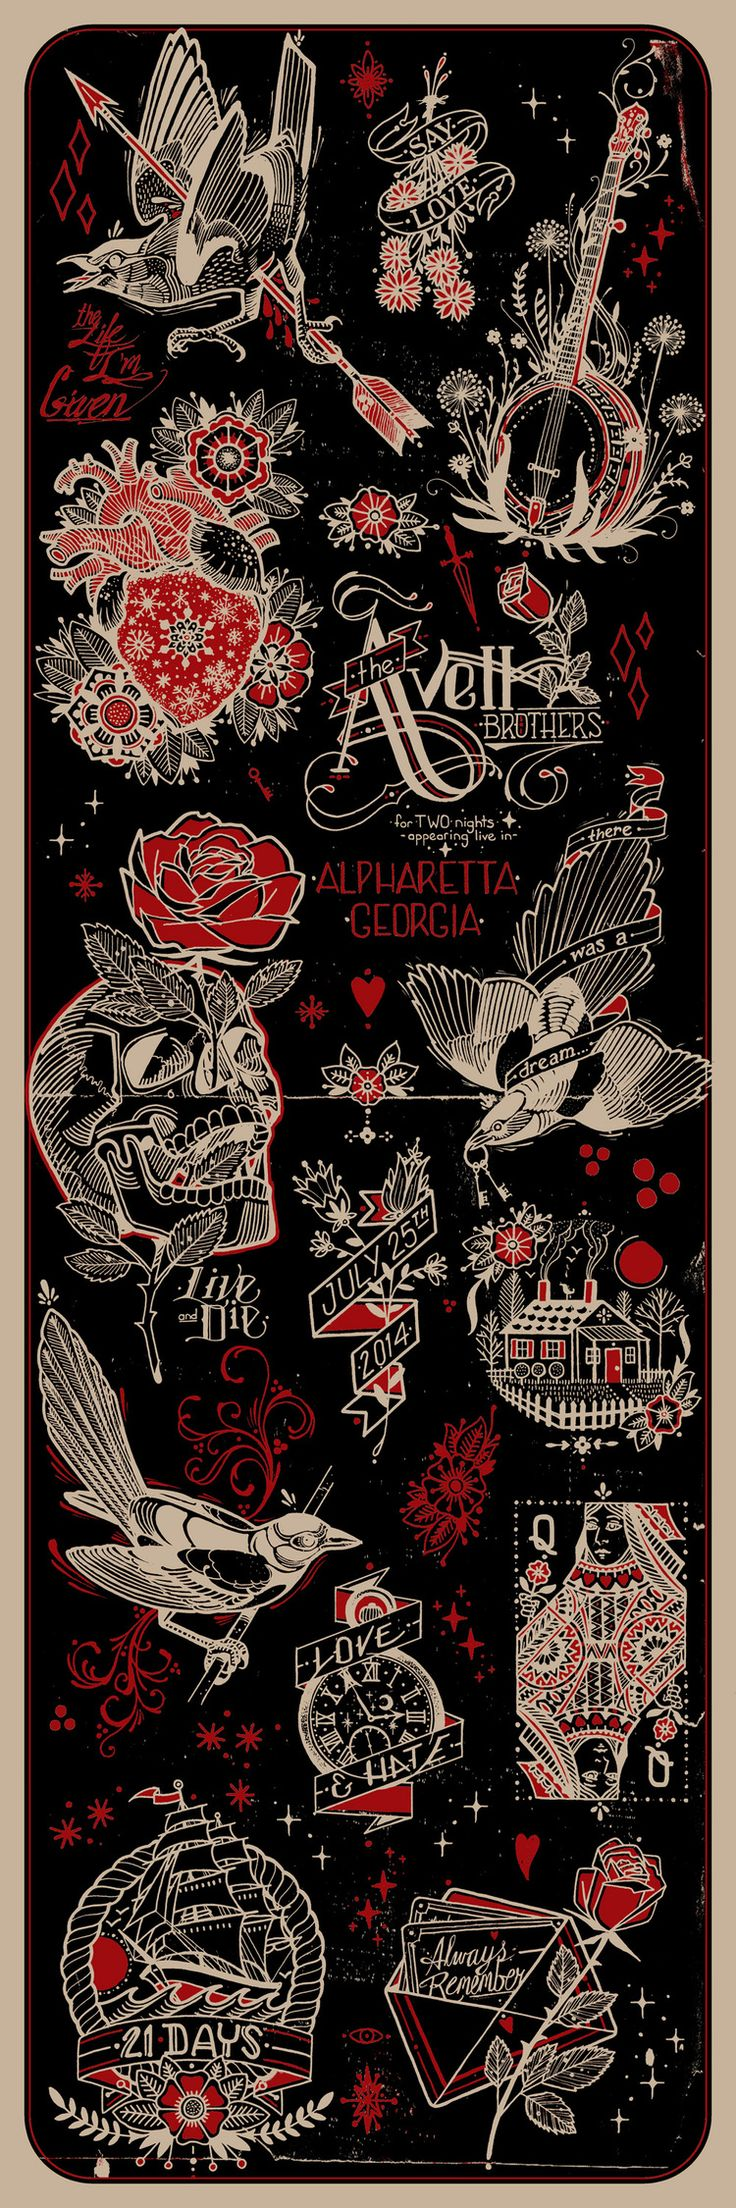 New Avett Brothers posters from David Hale